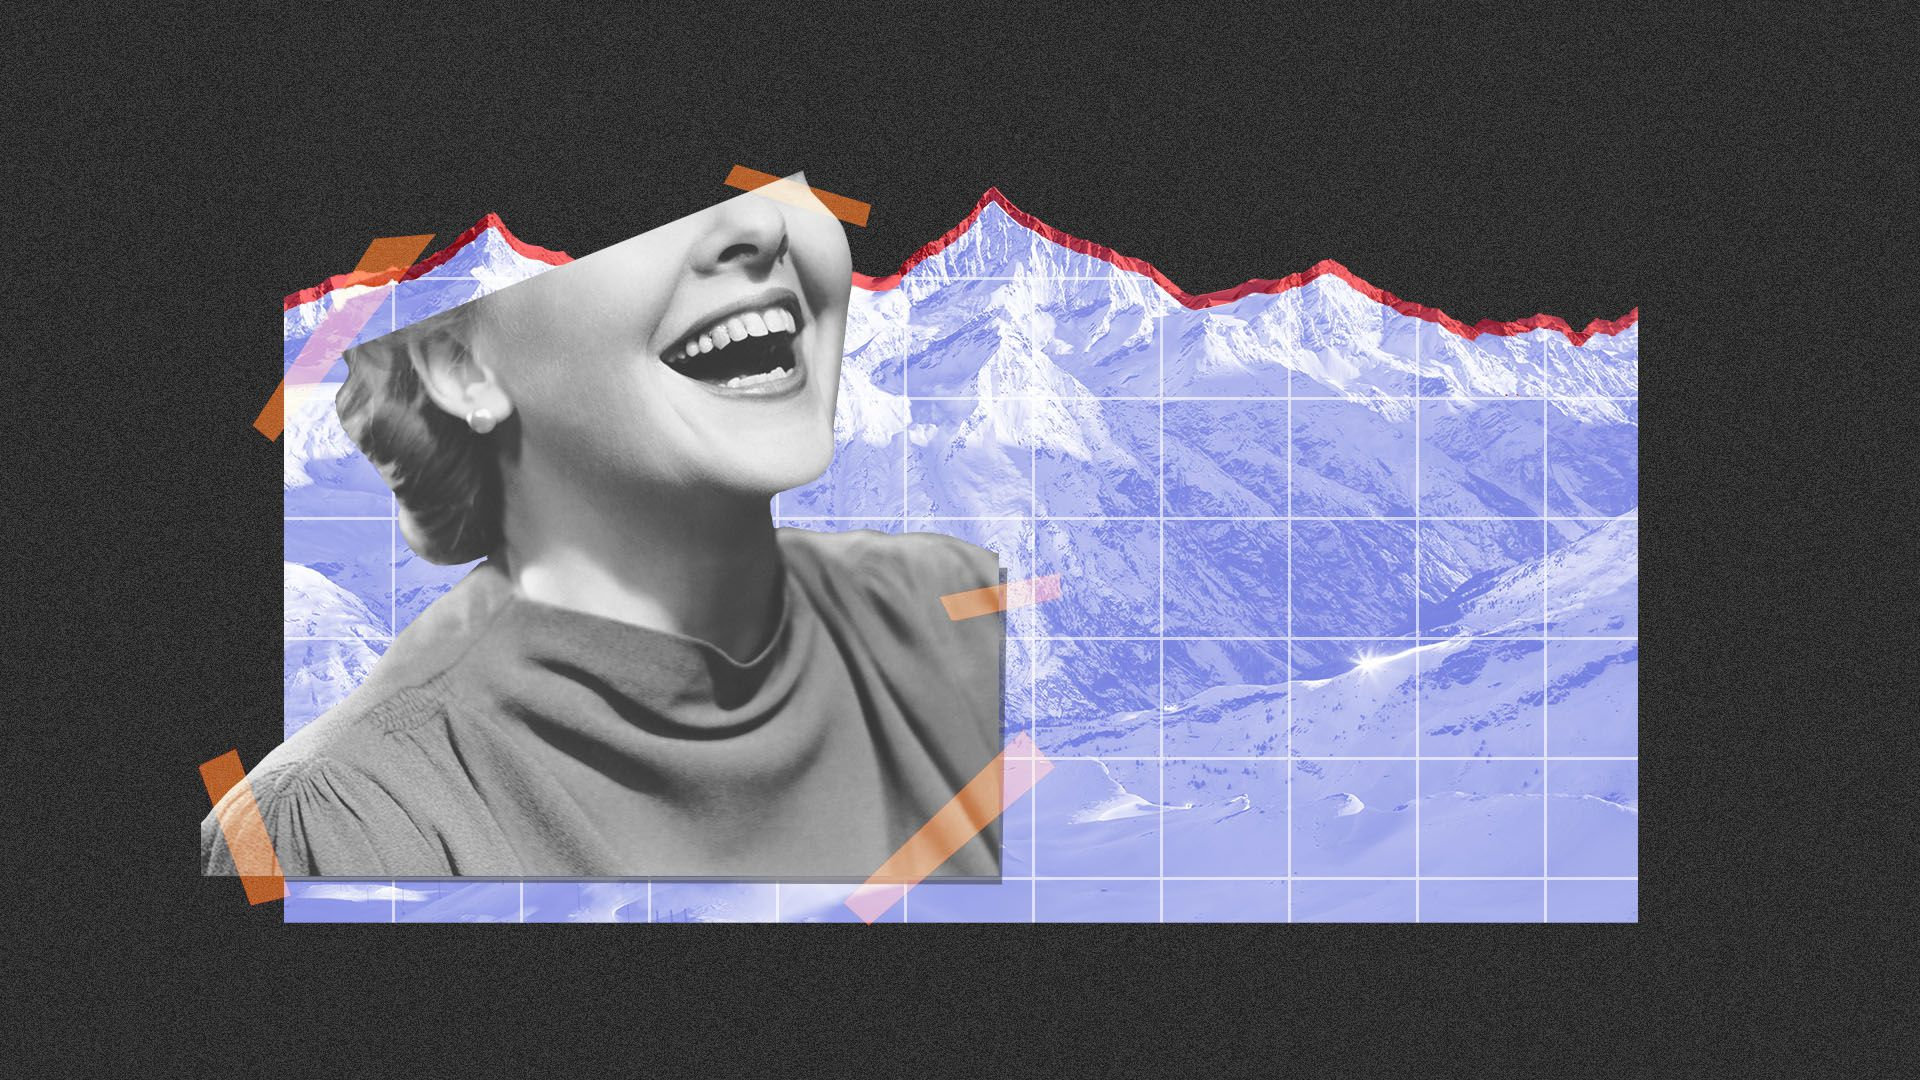 A Davos conversation on maximizing happiness, not GDP - Axios